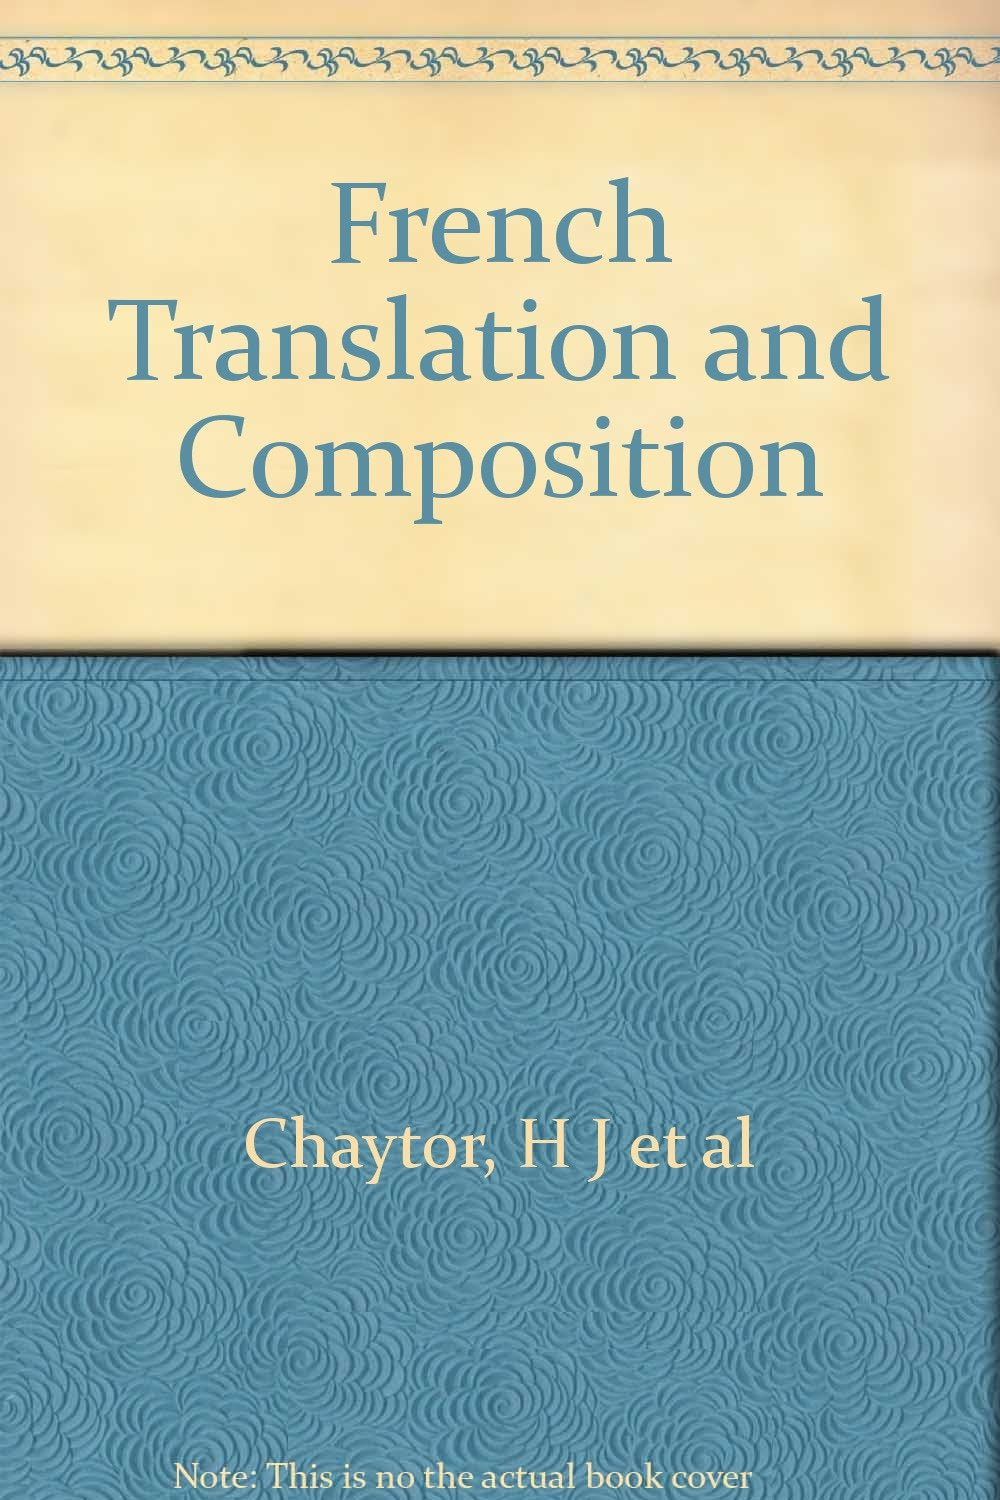 French Translation and Composition [Hardcover]